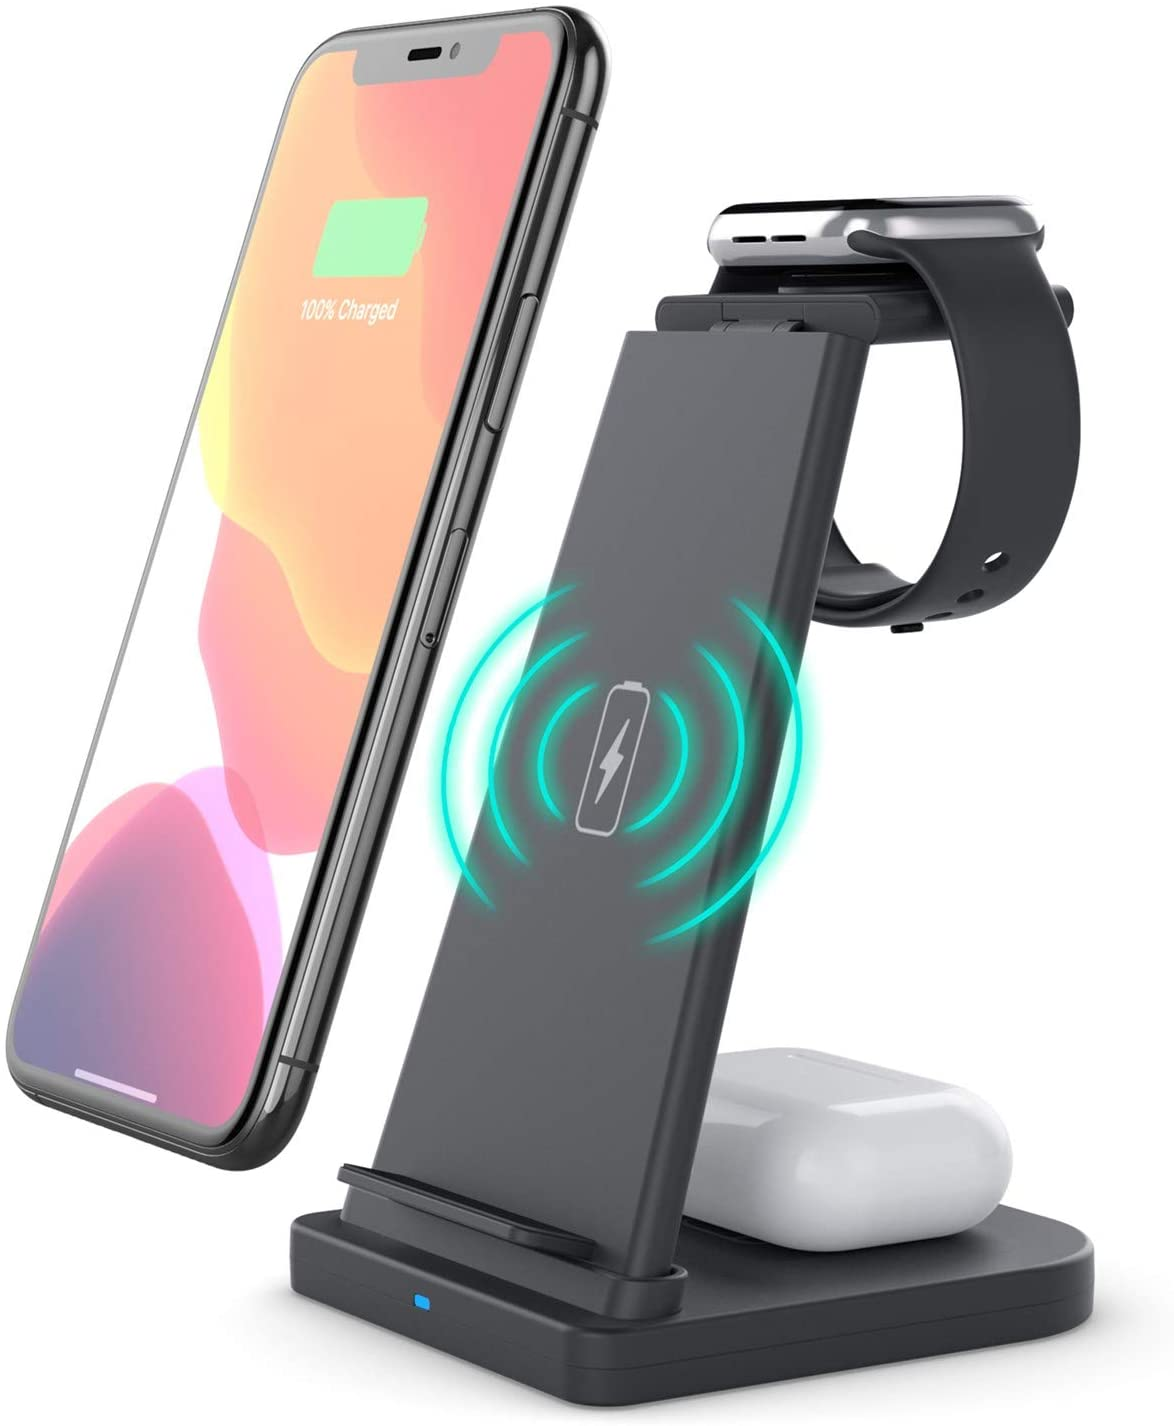 Afurdel Wireless Charging Station QI 3 in 1 Fast Wireless Charger Stand,for for iPhone 12/11/11 Pro Max/XR/XS Max/Xs/X/8/8P, iWatch 5/4/3/2 AirPods Pro/Airpods 2,Sangsung(with QC3.0 Adapter) (Black)